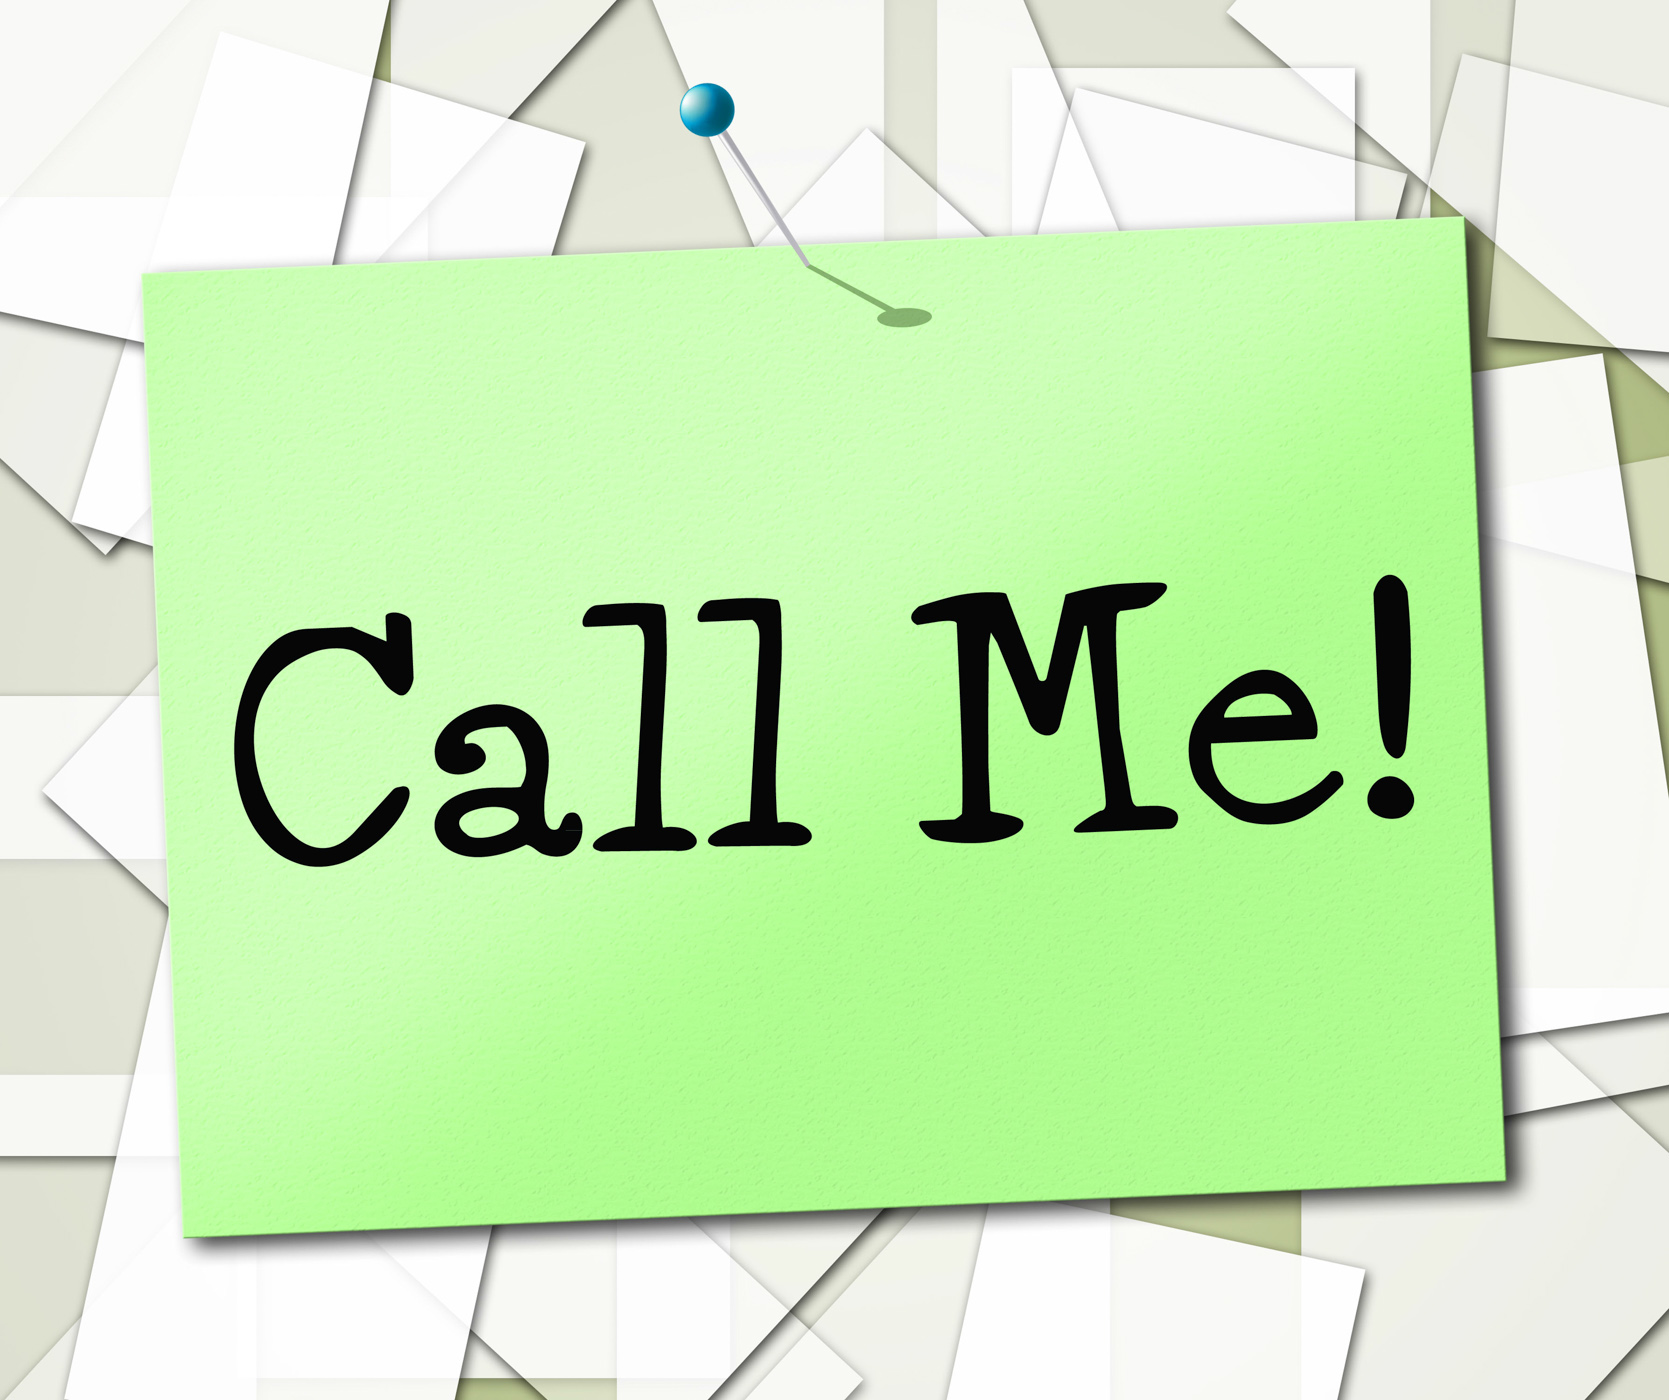 Call Me Shows Placard Advertisement And Signboard, Advertisement, Message, Talking, Talk, HQ Photo